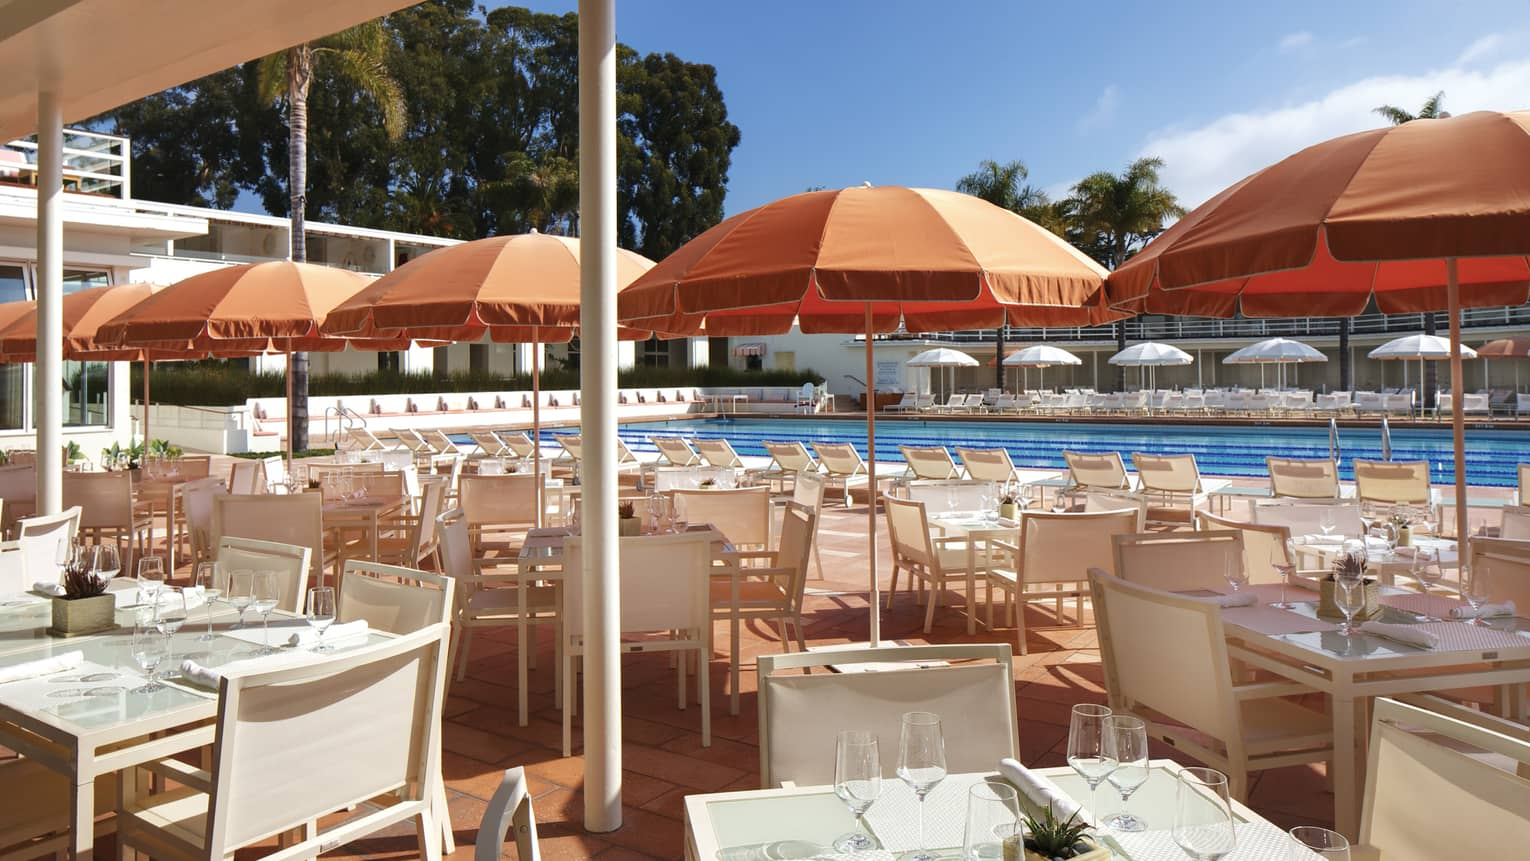 Coral Cafe and Bar patio, orange umbrellas over white dining tables, chairs by pool